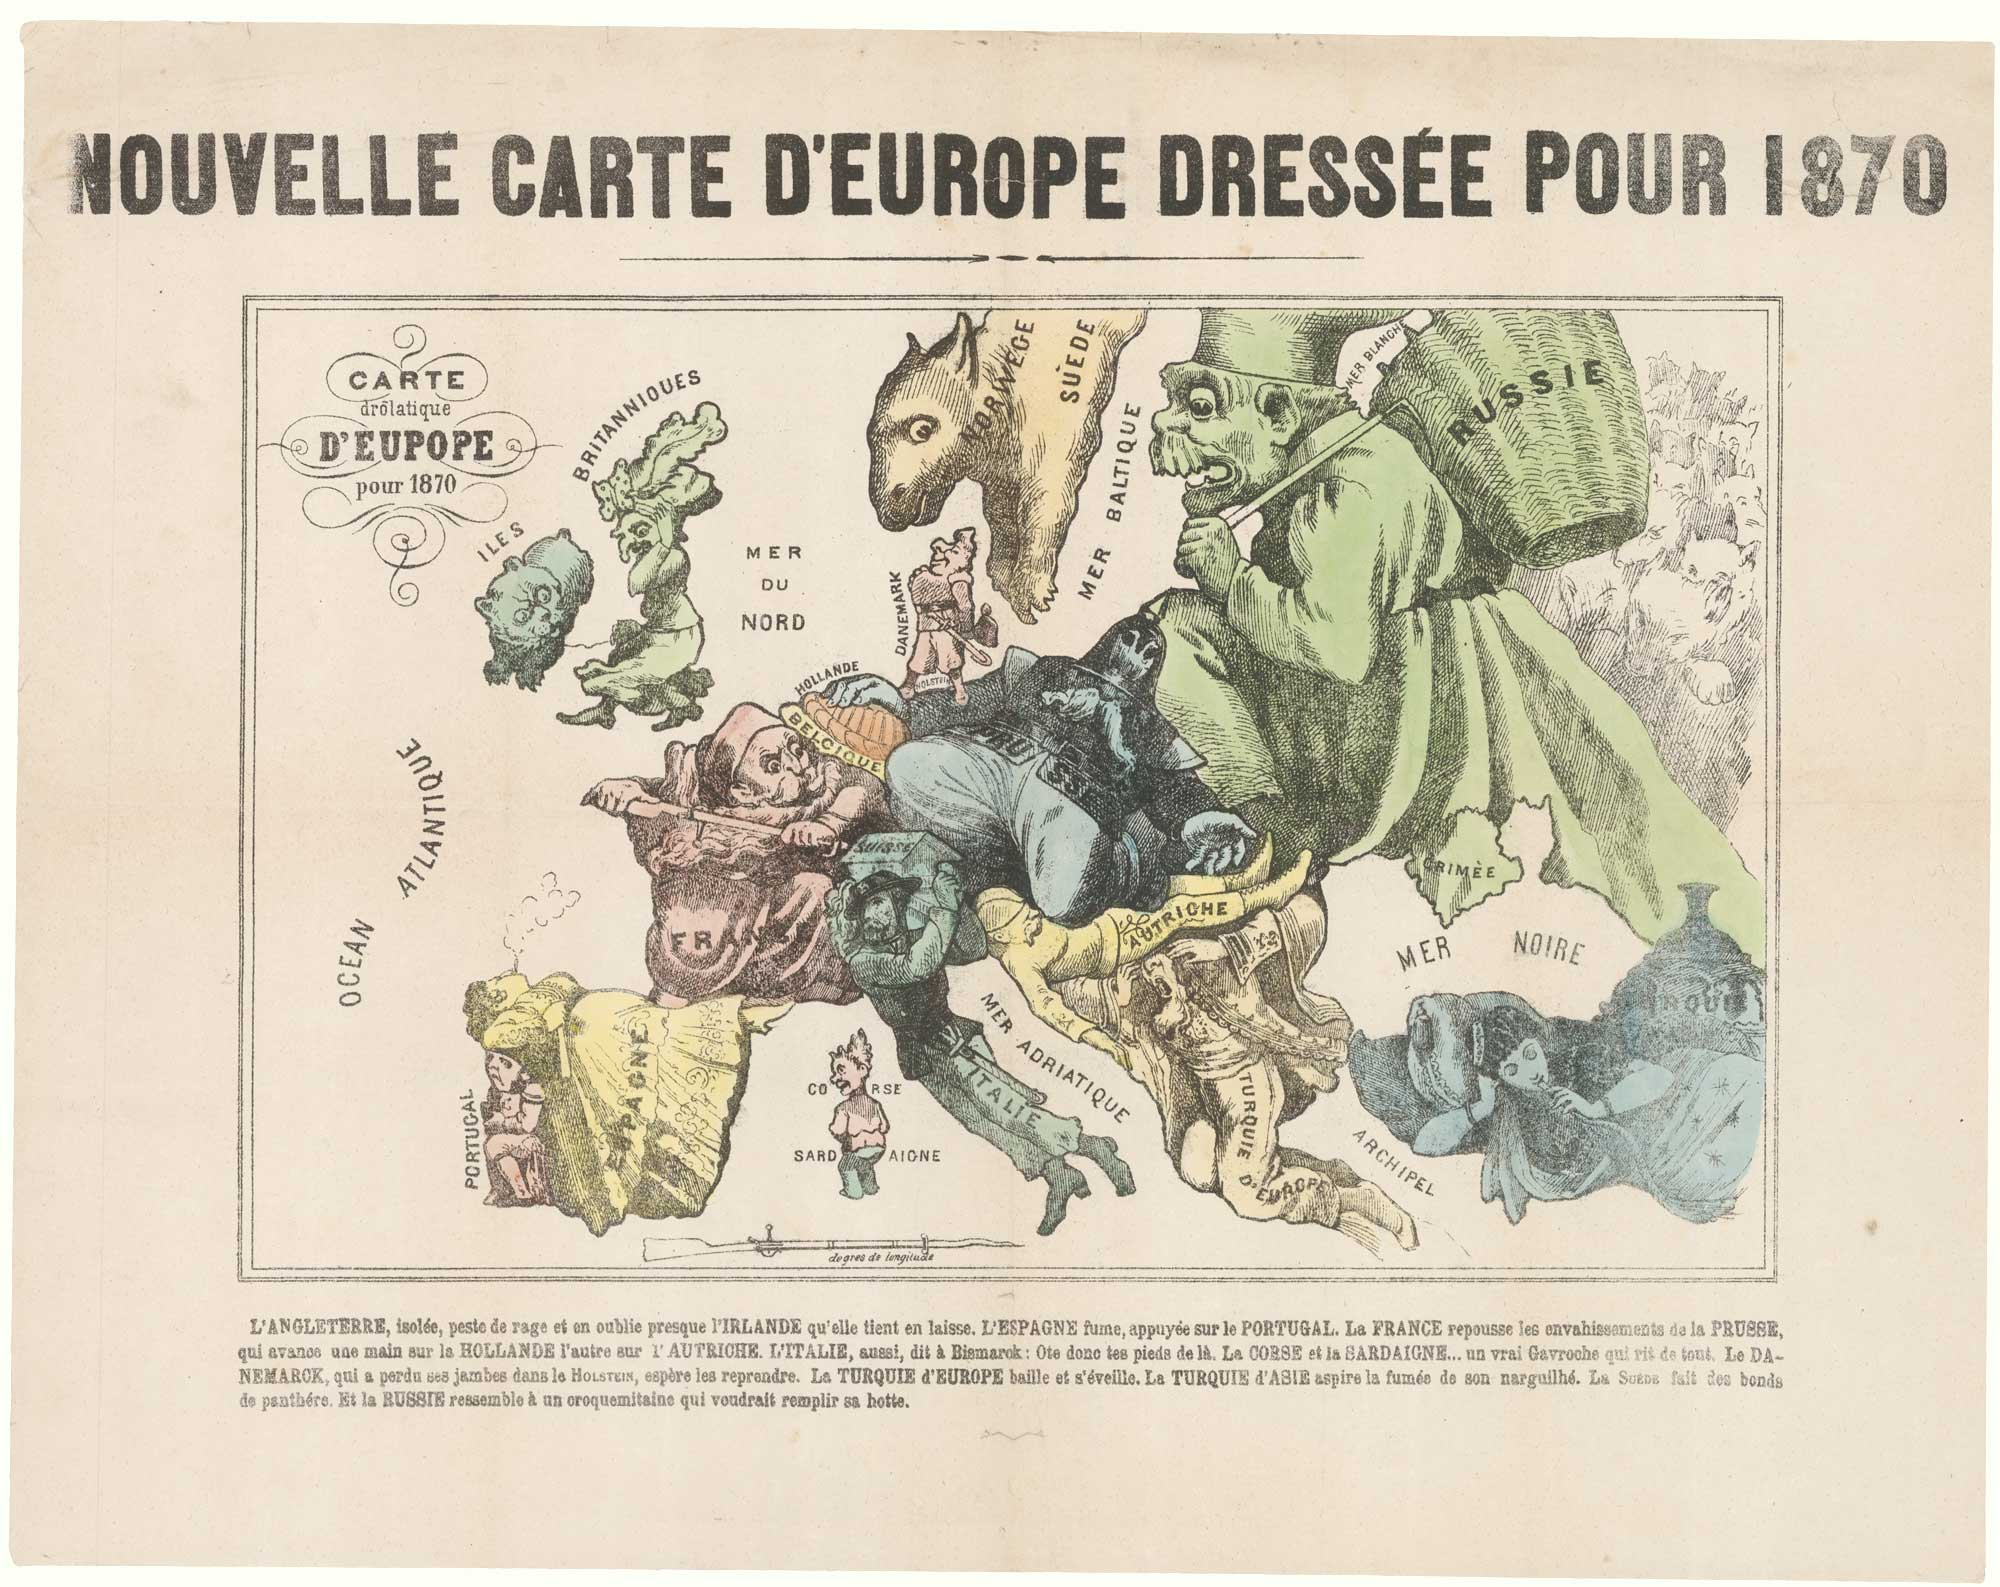 Hadol serio-comic map of Europe